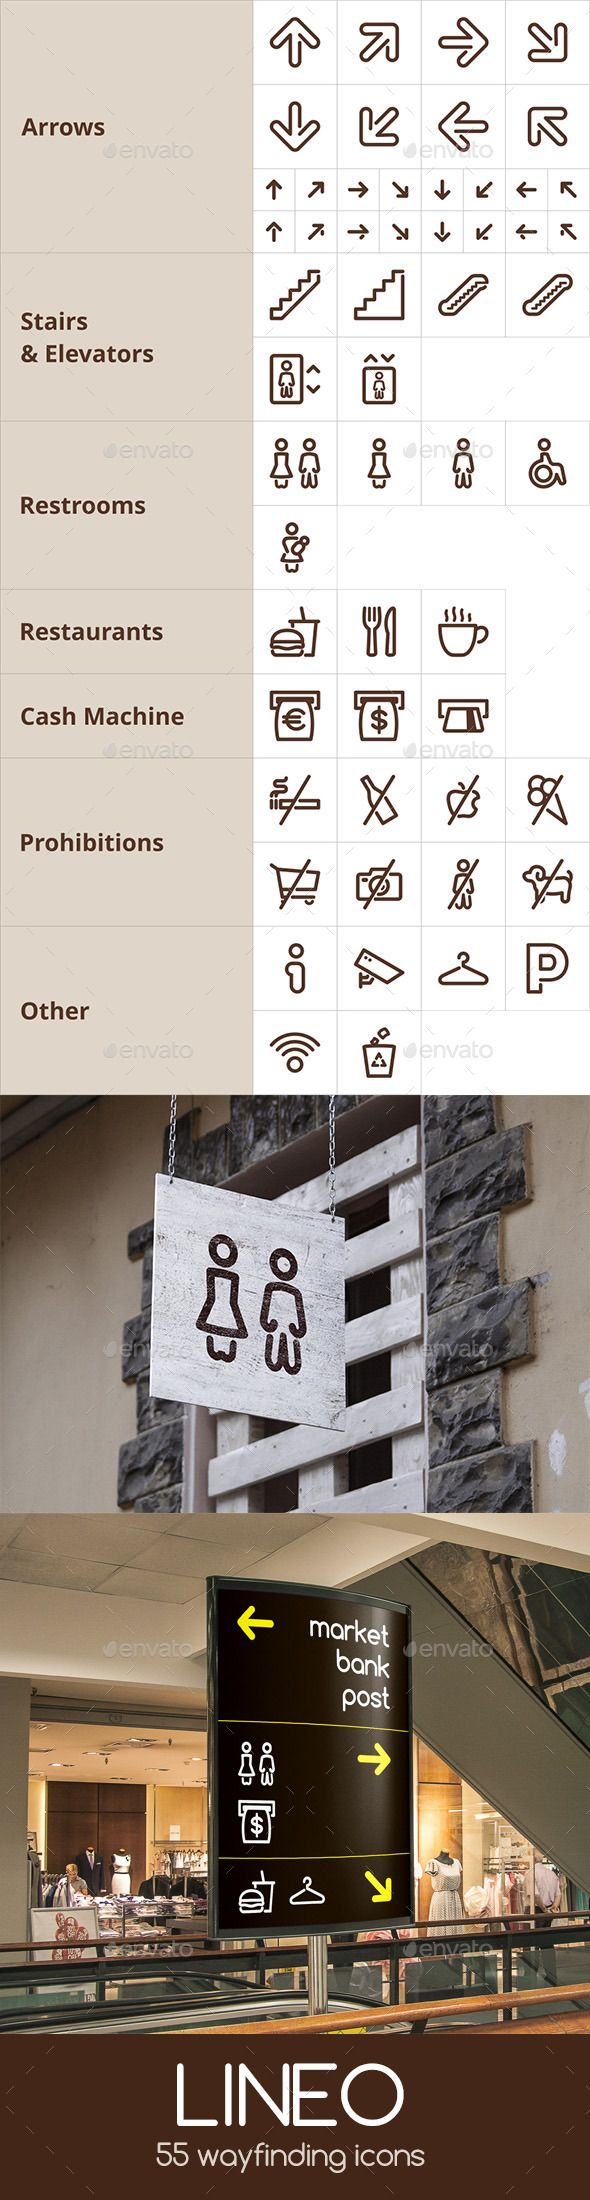 Lineo - 55 Wayfinding Icons - Miscellaneous Icons